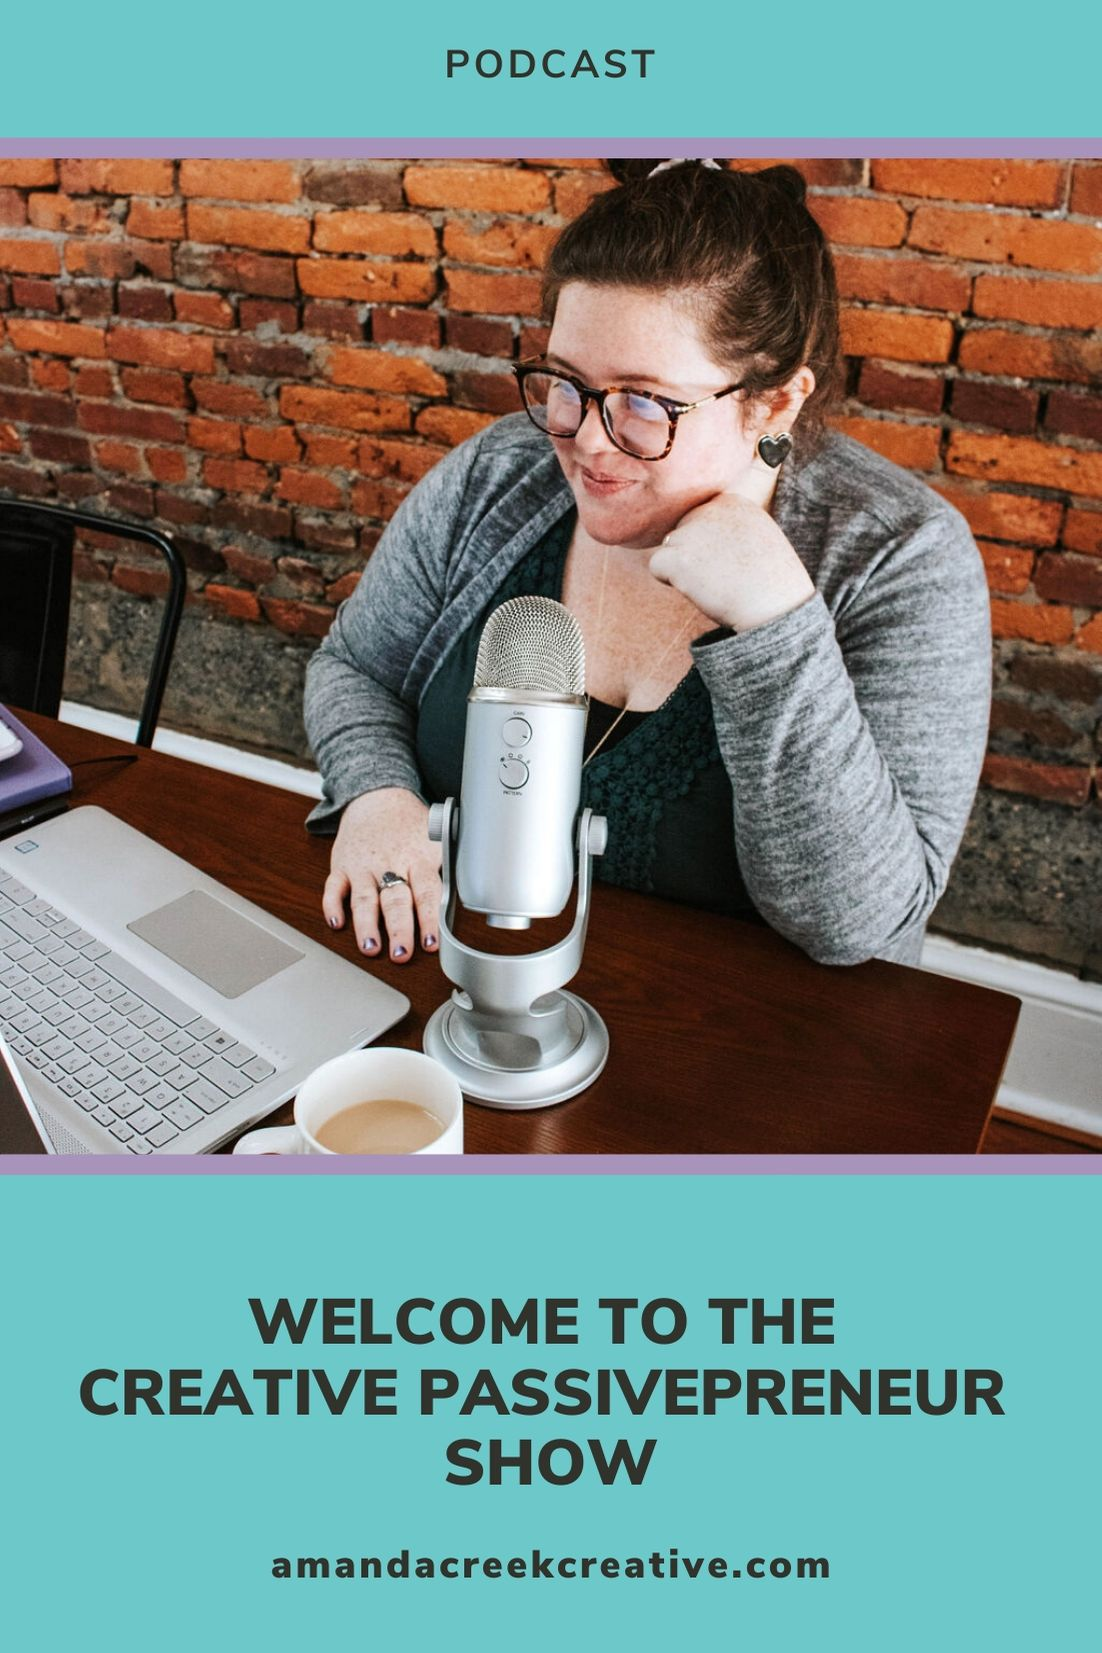 Welcome to the Creative Passivepreneur Show